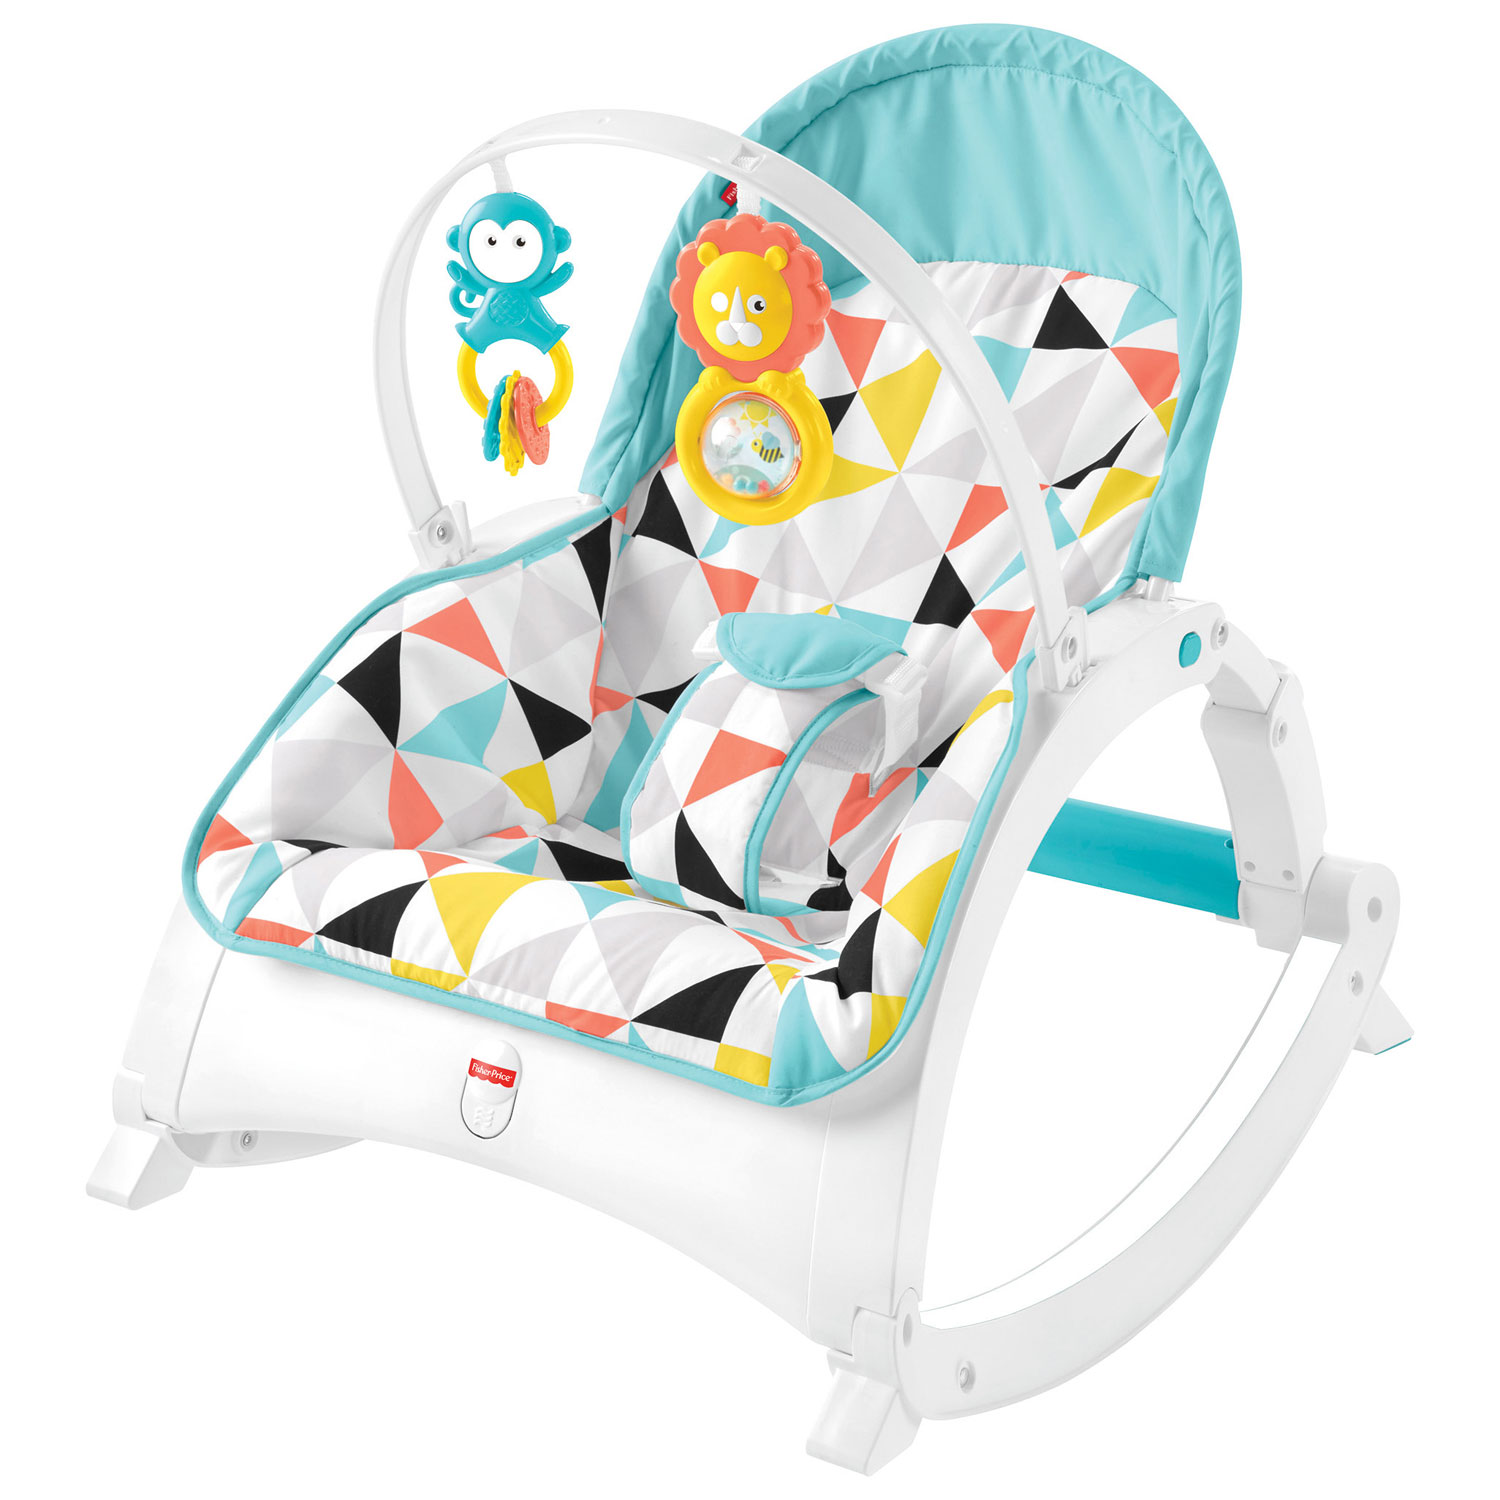 Fisher Price Newborn To Toddler Portable Rocker Bouncers Swings Infant Learning Toaster Best Buy Canada